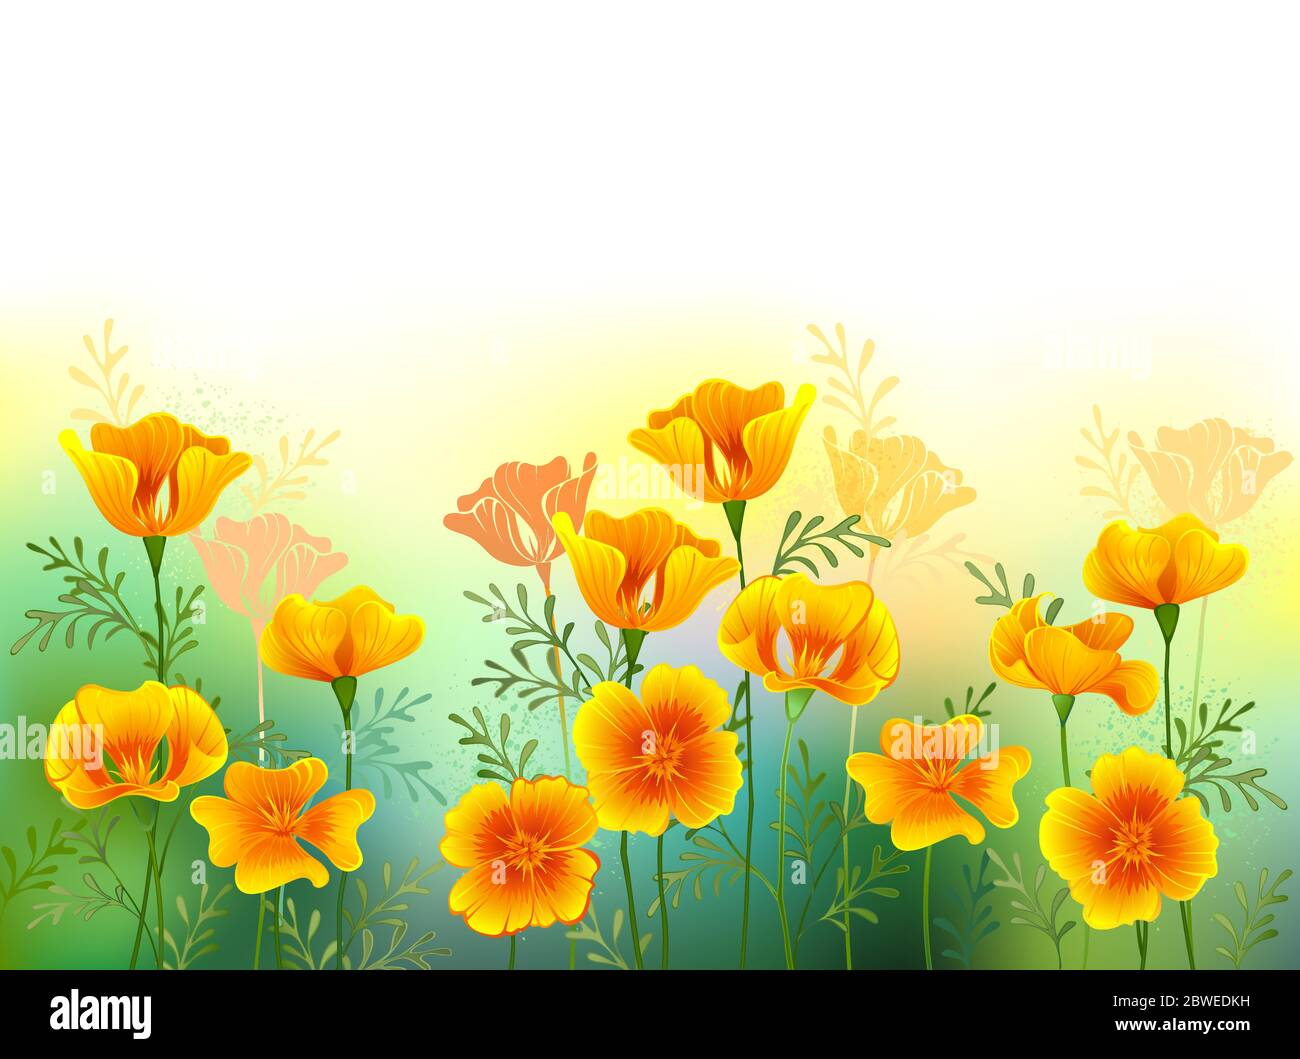 Artistically drawn glade of orange, California poppies on white background. Wildflowers. Stock Vector